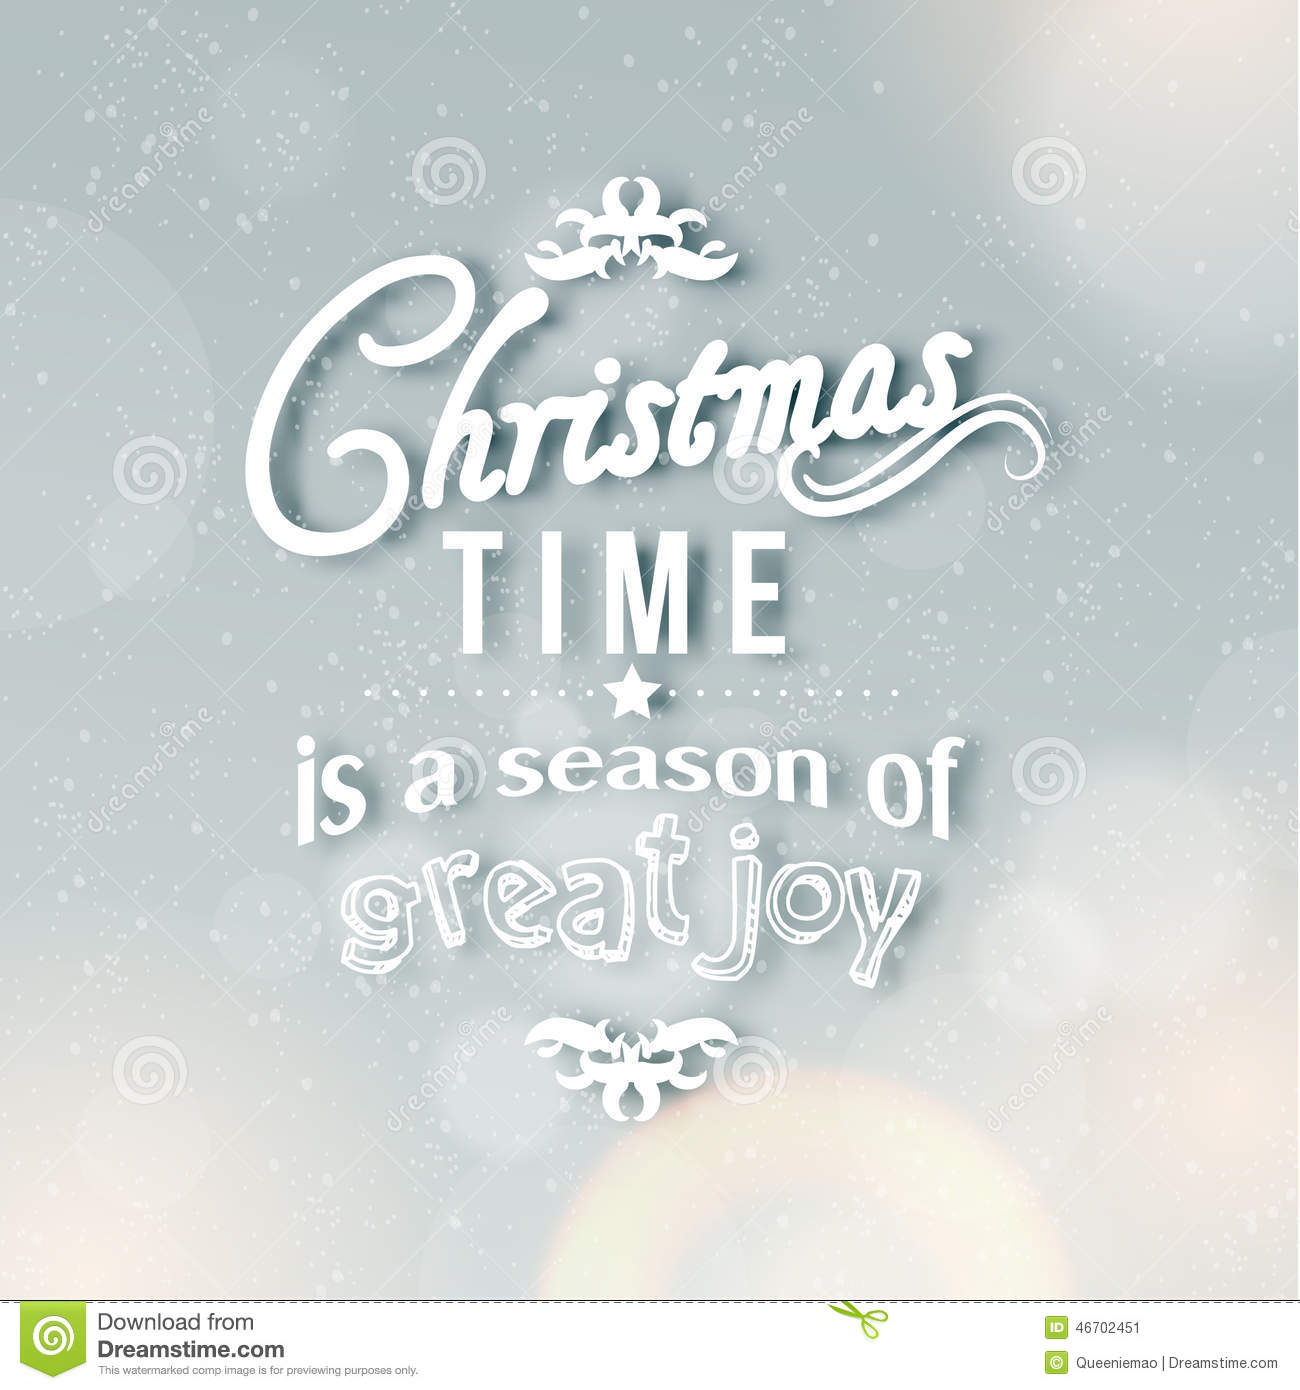 Merry christmas season greetings quote stock illustration download comp m4hsunfo